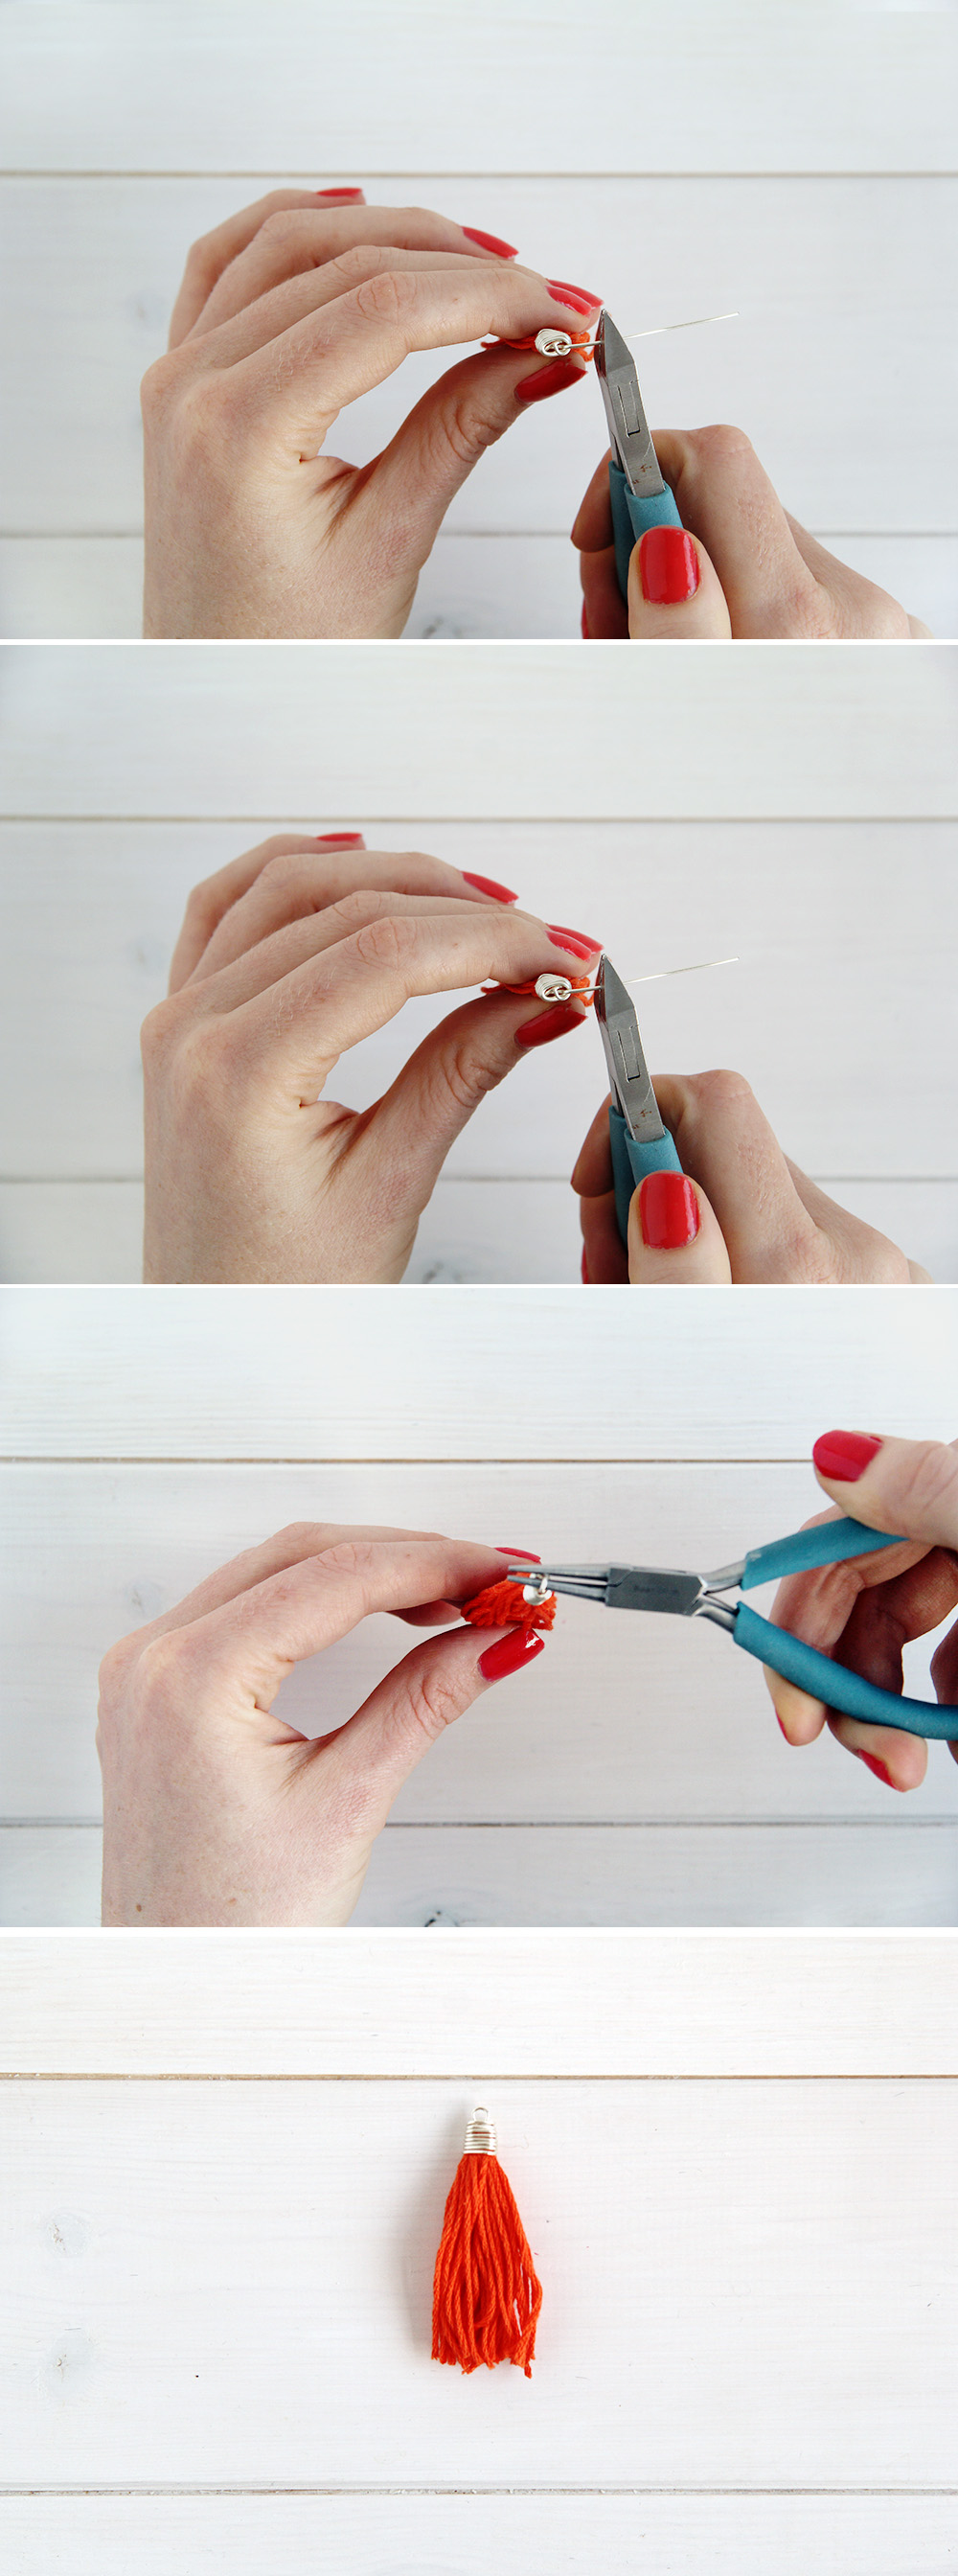 How to make wire wrapped tassel caps fall for diy 7 fold over 90 degrees trim to about 1cm and turn a loop if you want to know more about perfecting basic jewellery making techniques like this one check solutioingenieria Image collections